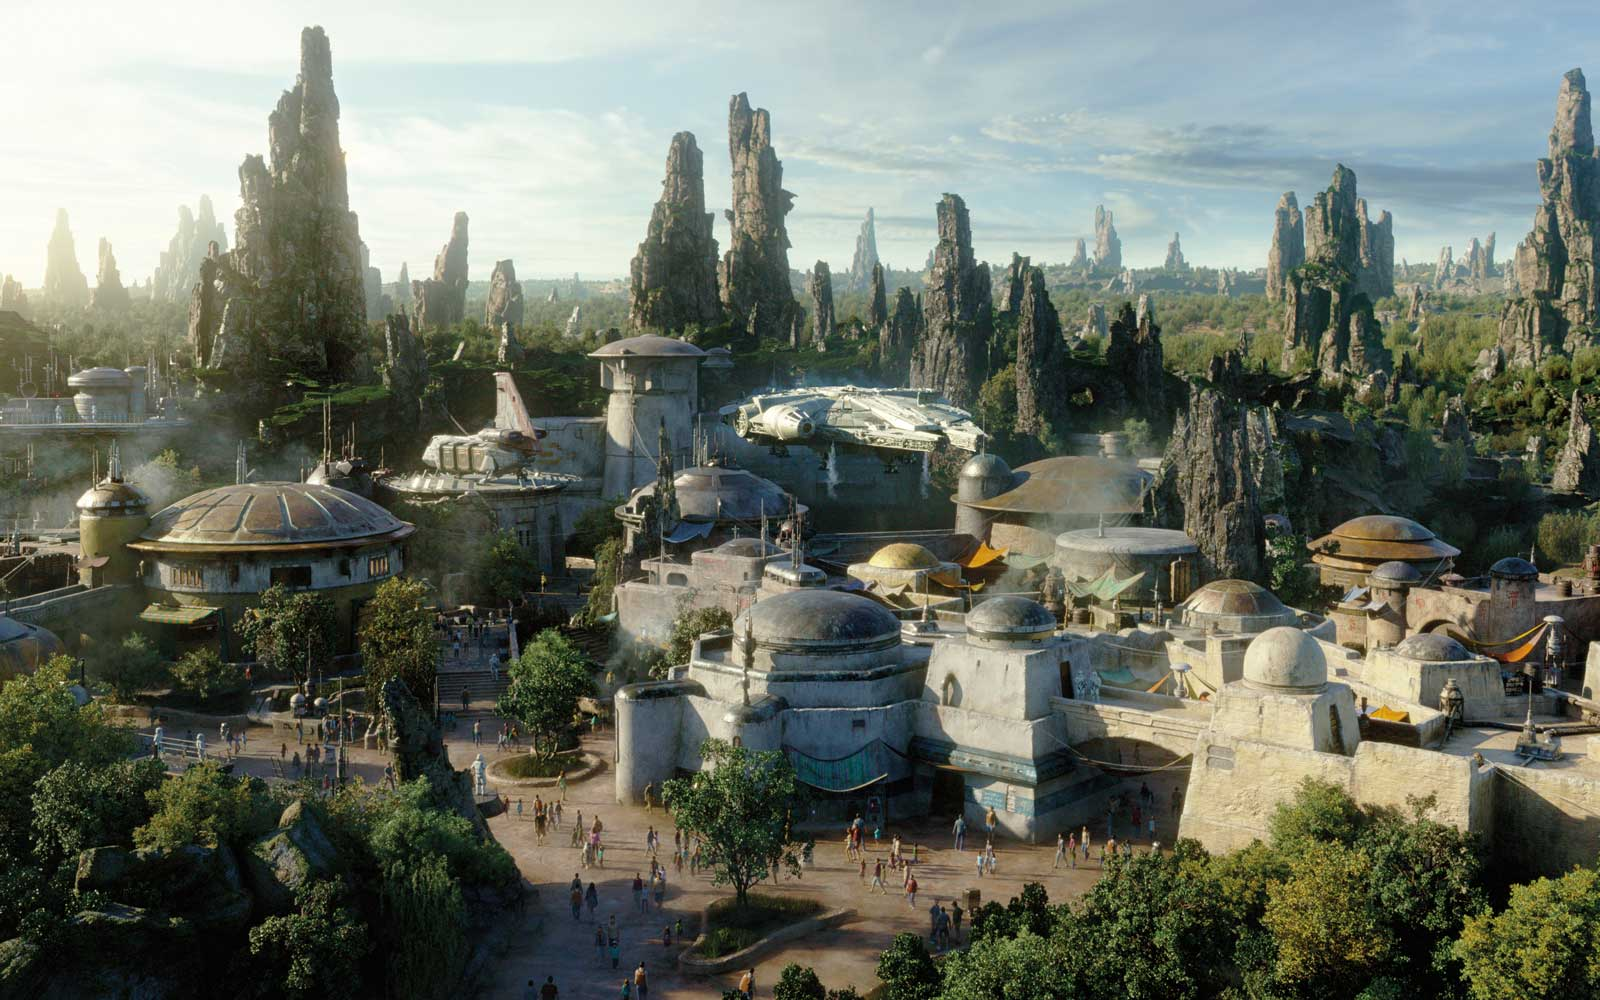 Why People Will Go All The Way to Star Wars Land and Not Ride Any Rides